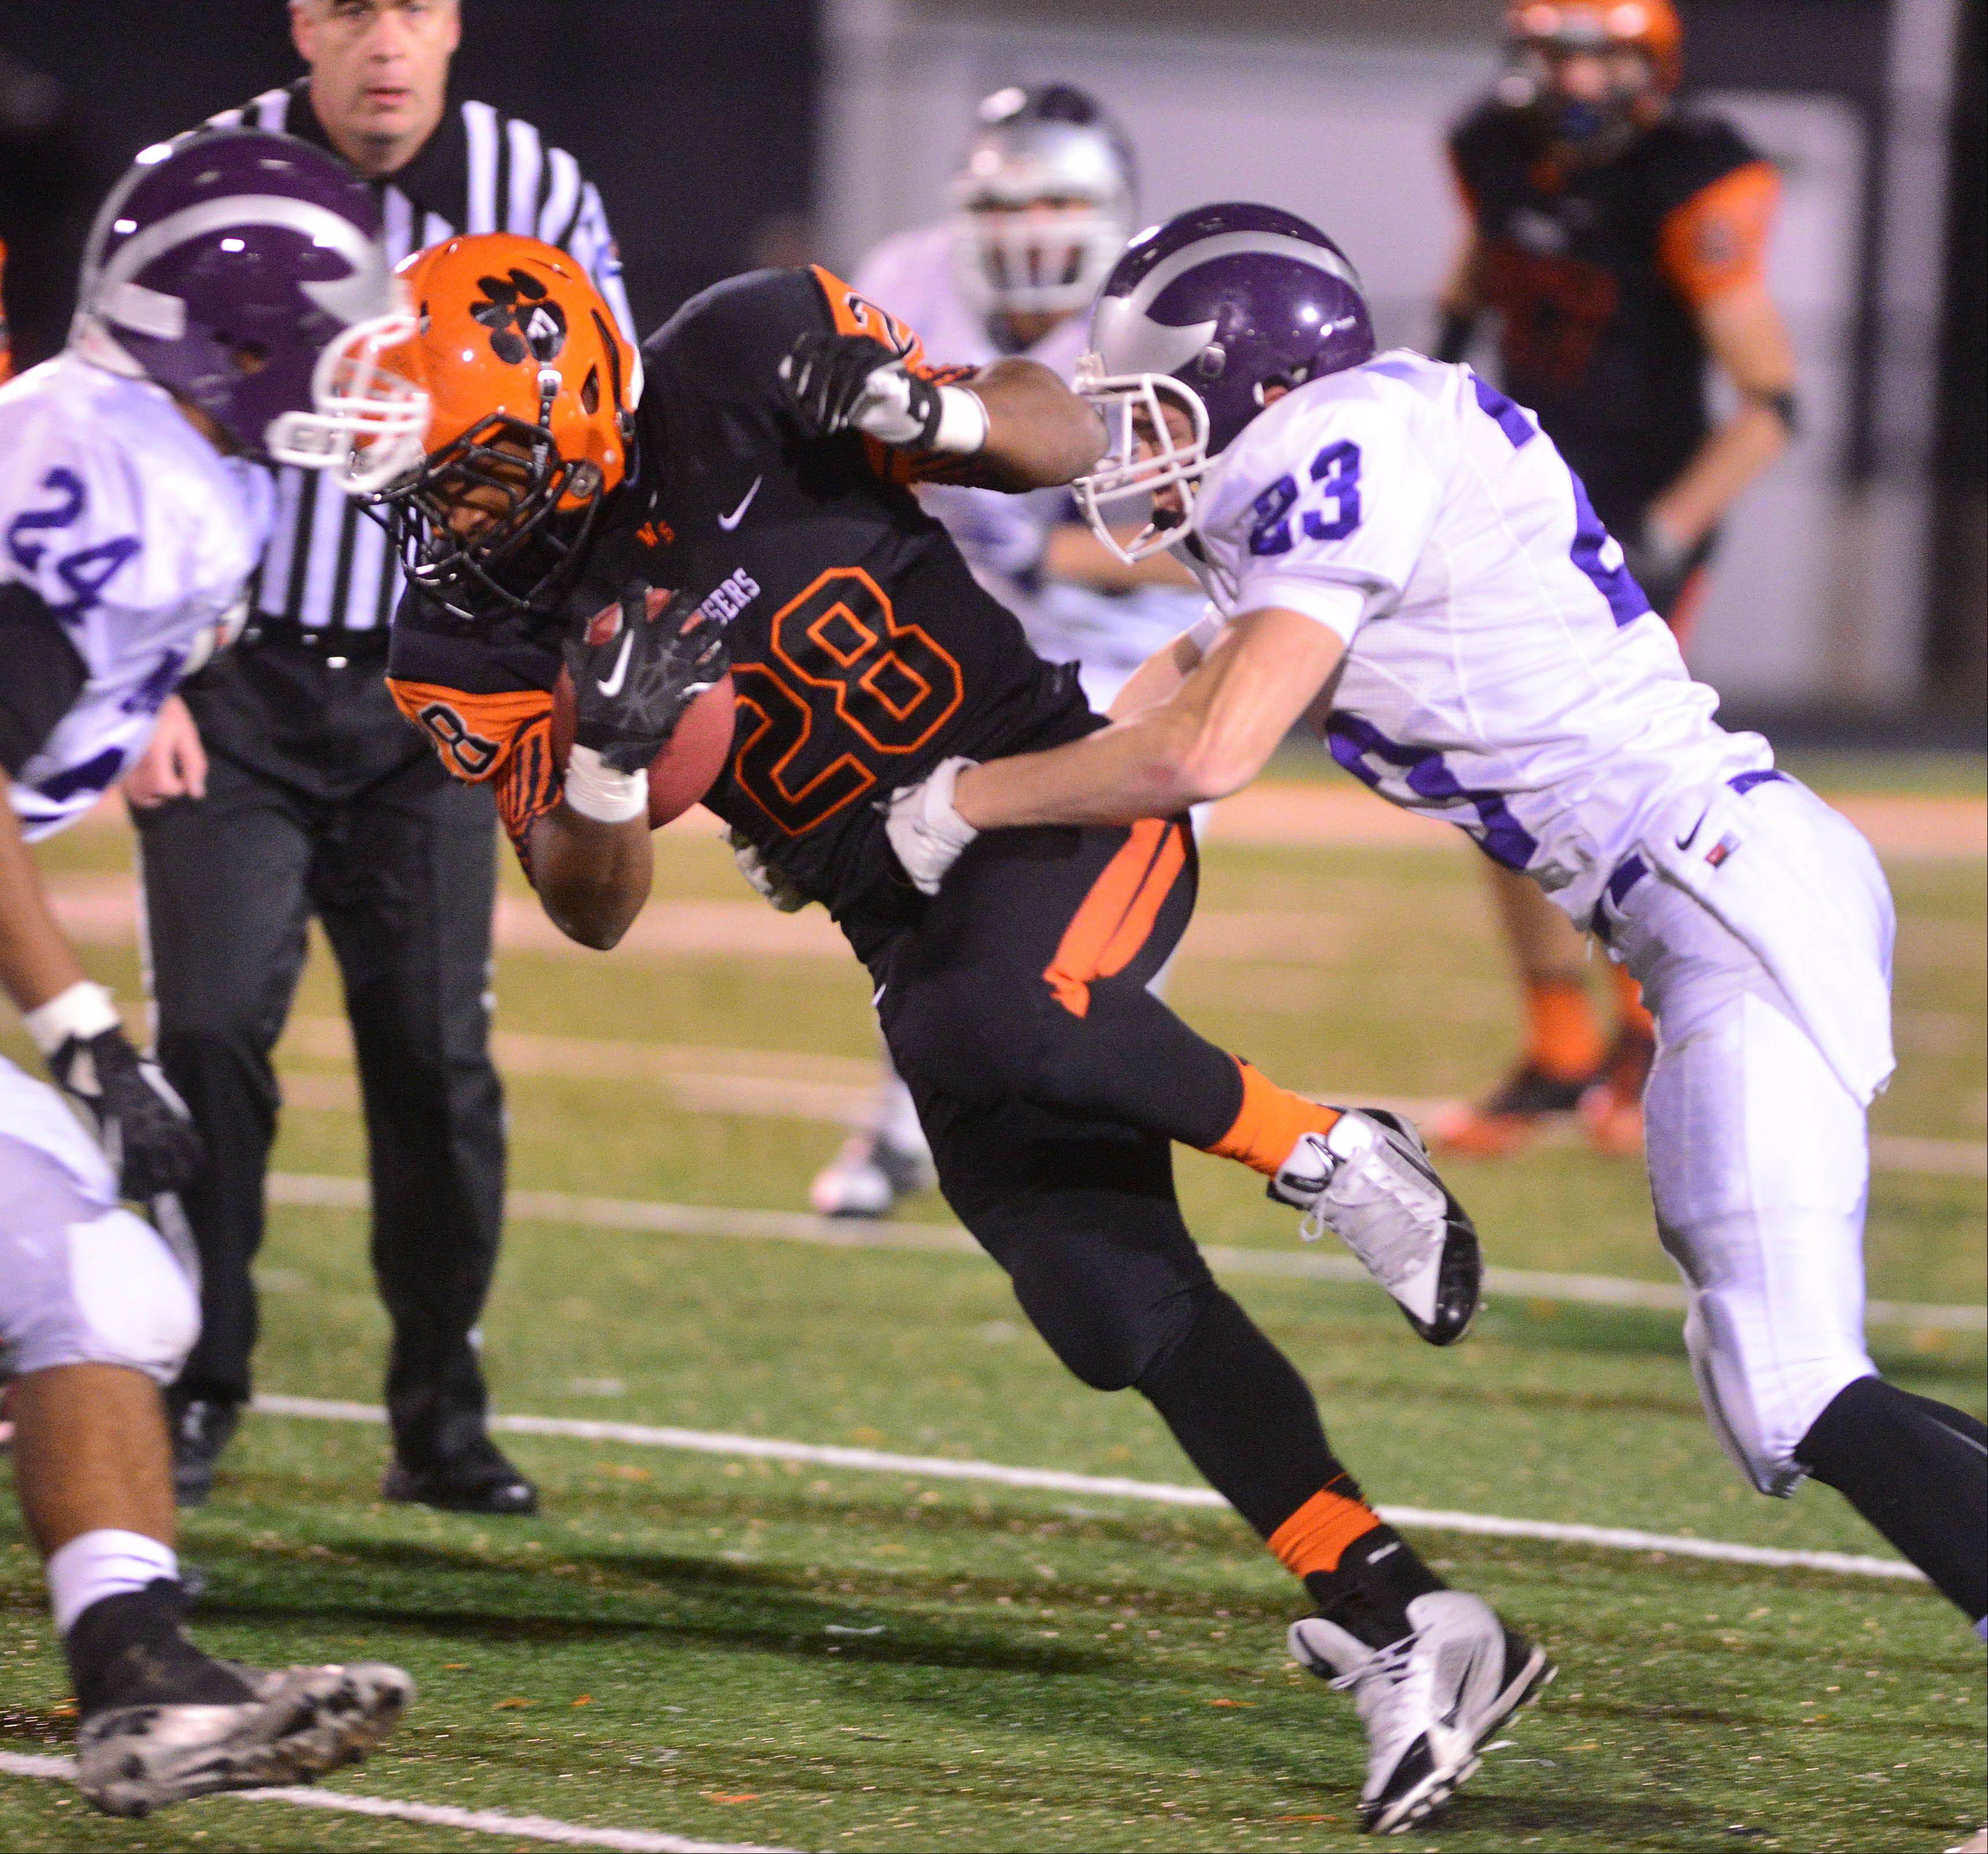 Isaiah Campos of Wheaton Warrenville South breaks a tackle from Mitchell Coha.